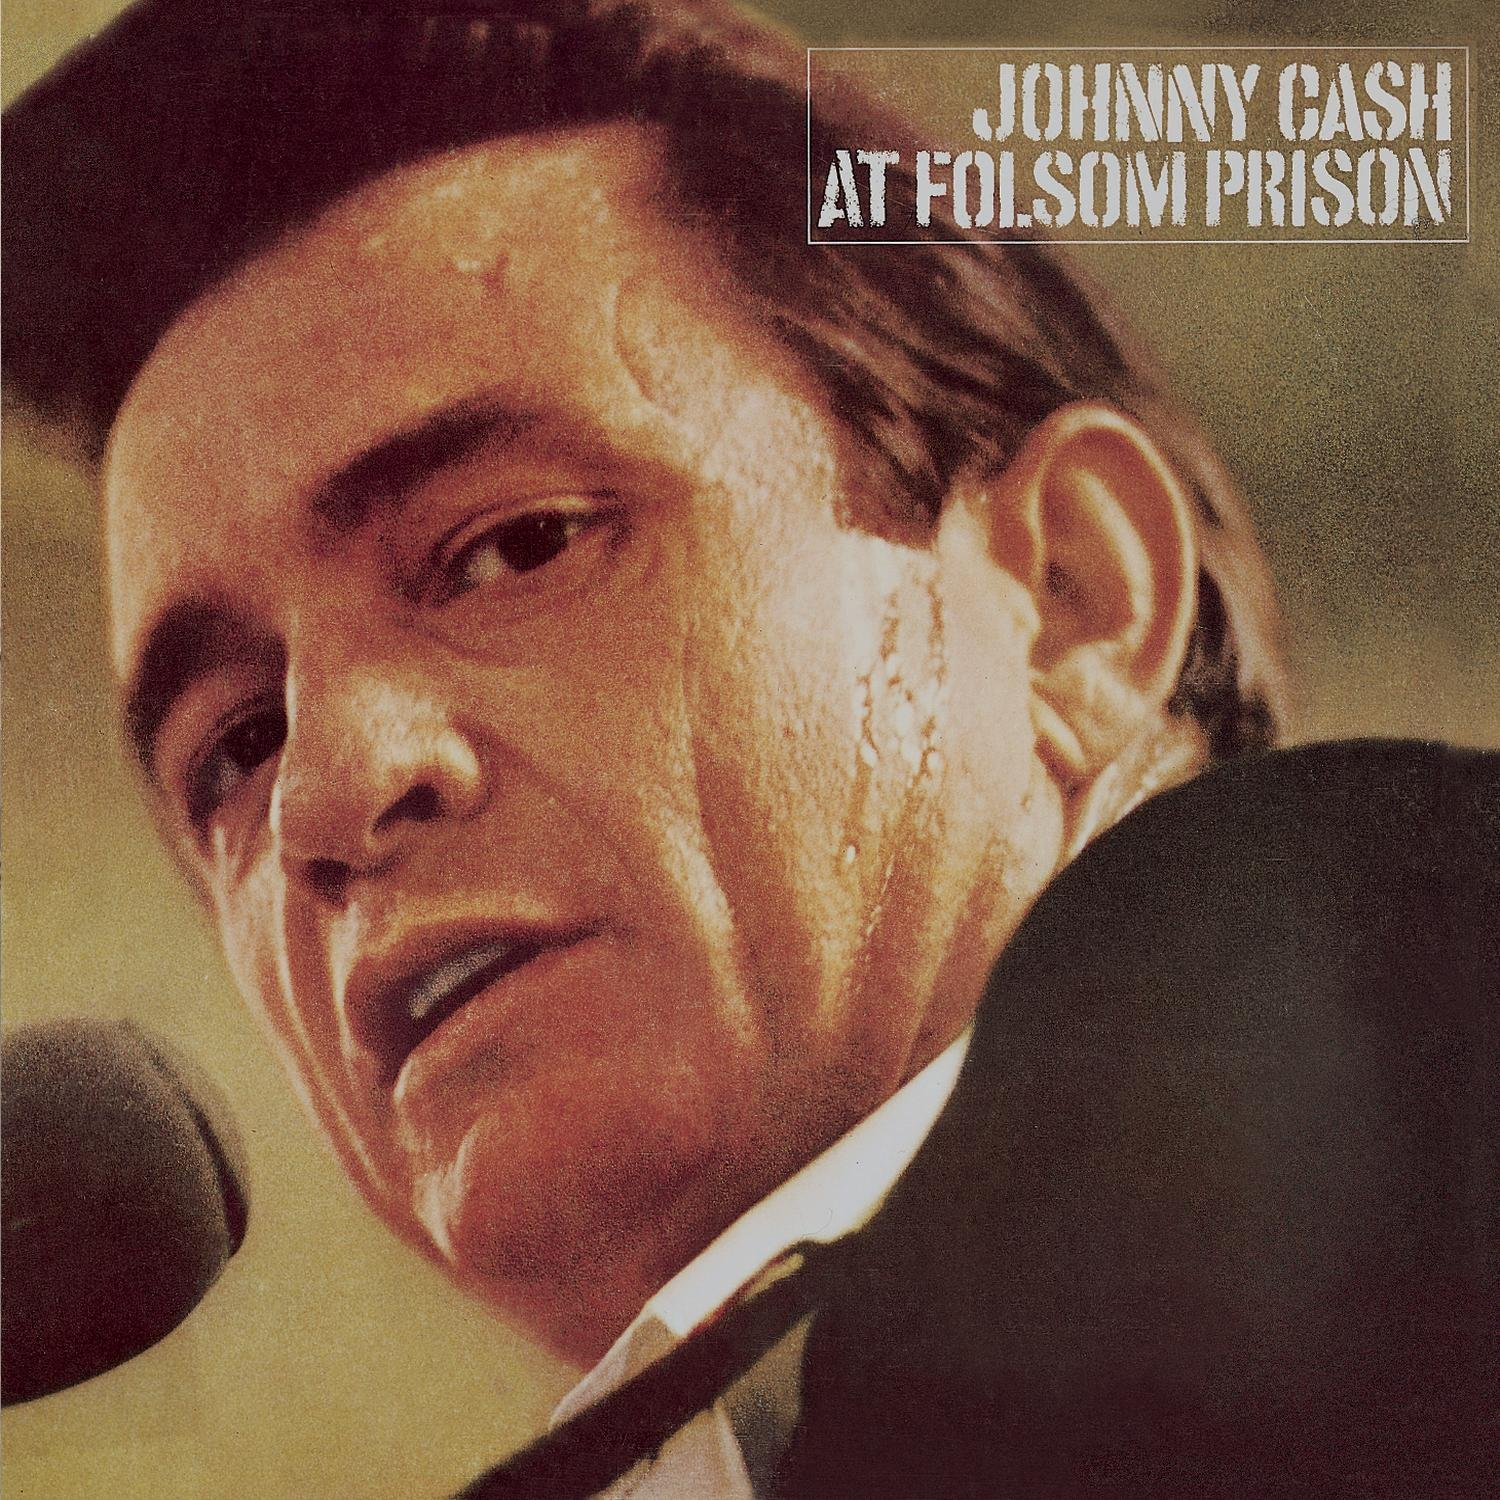 Johnny Cash Live at Folsom Prison The 100 Greatest Albums of All Time